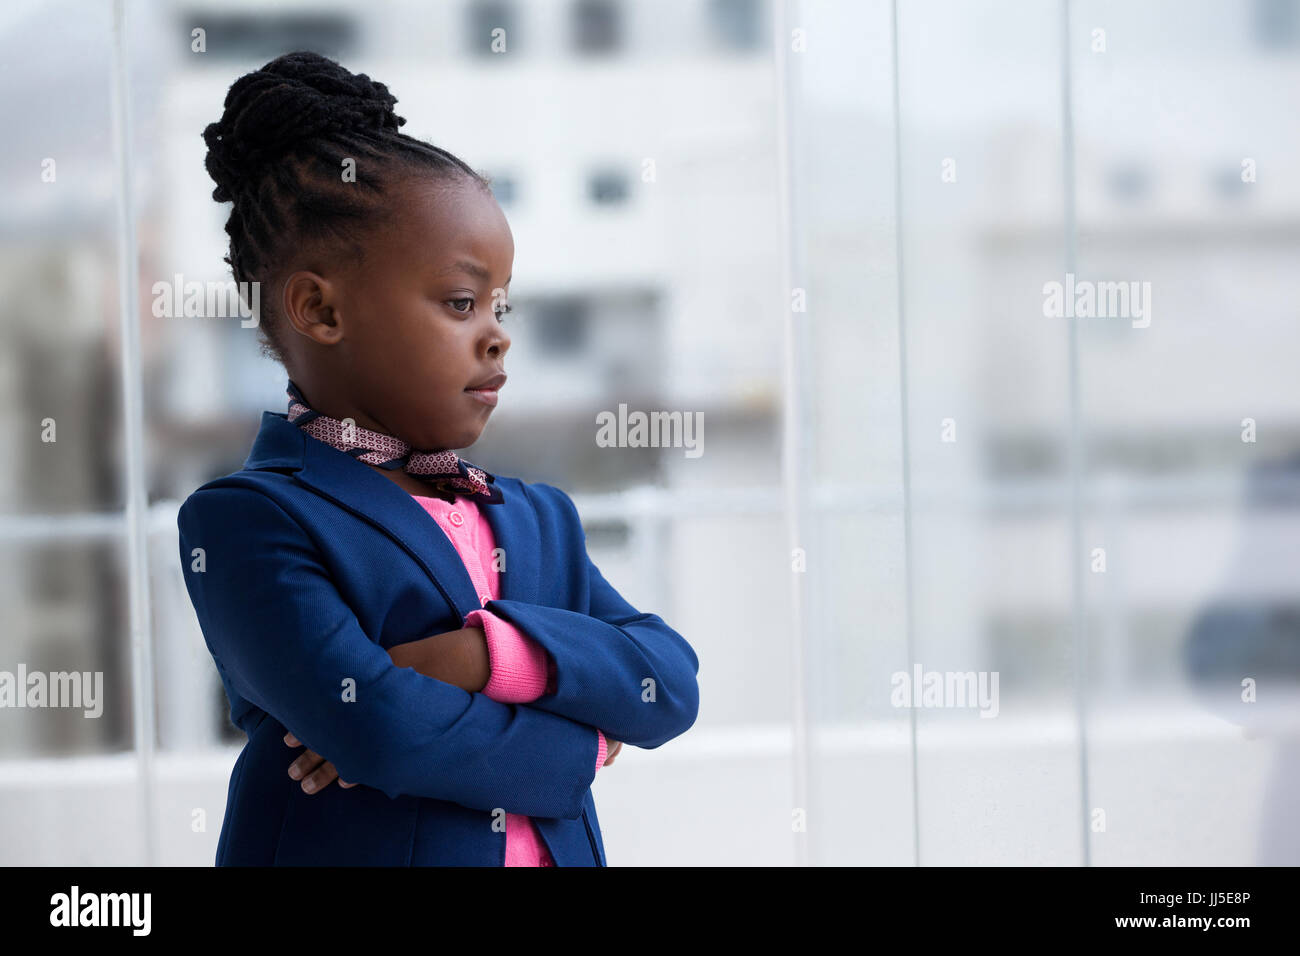 Contemplated businesswoman with arms crossed standing by glass window in office - Stock Image